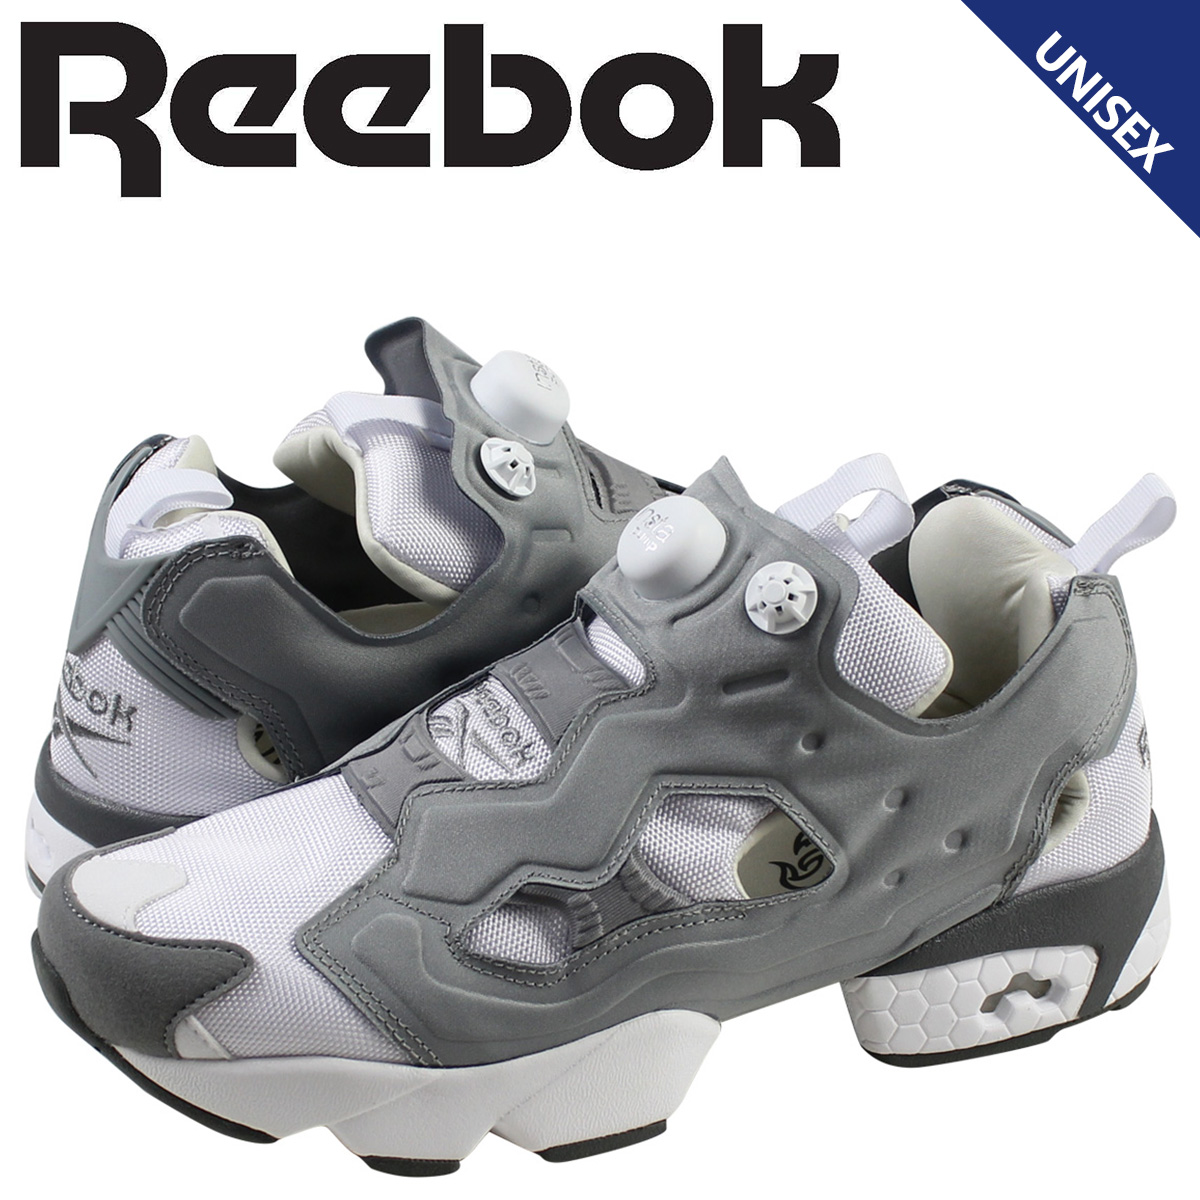 5c66ff8b Reebok Reebok INSTA PUMP FURY OG sneaker insta pump fury original mesh  leather men's women's M48560 white grey unisex [7 / 17 new stock] [regular]